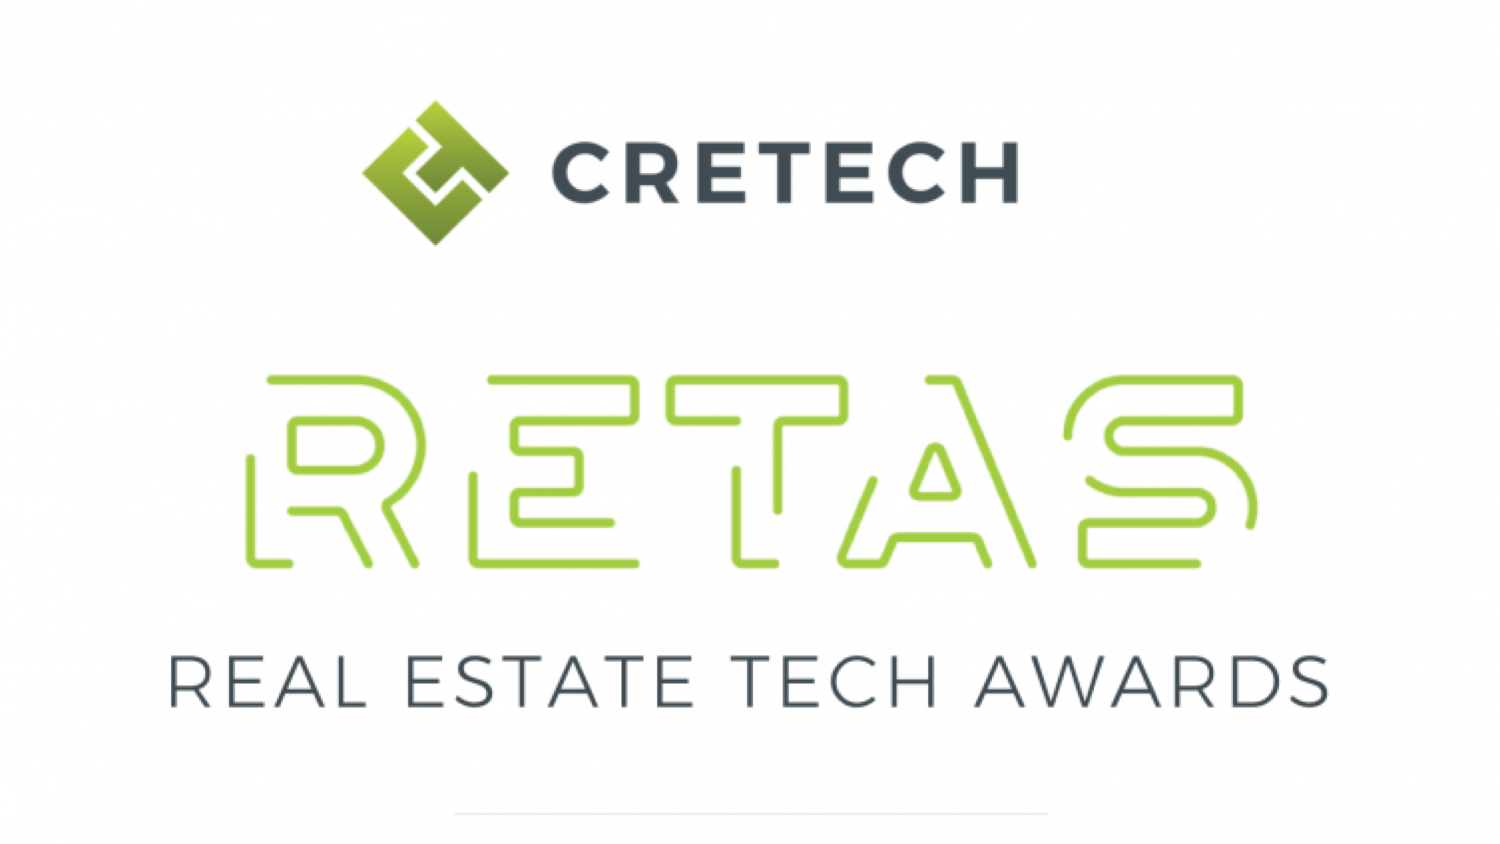 VTS Named the Number One CRM for the CRE Industry at the CREtech Real Estate Tech Awards for TRM offering of leasing and asset management platform